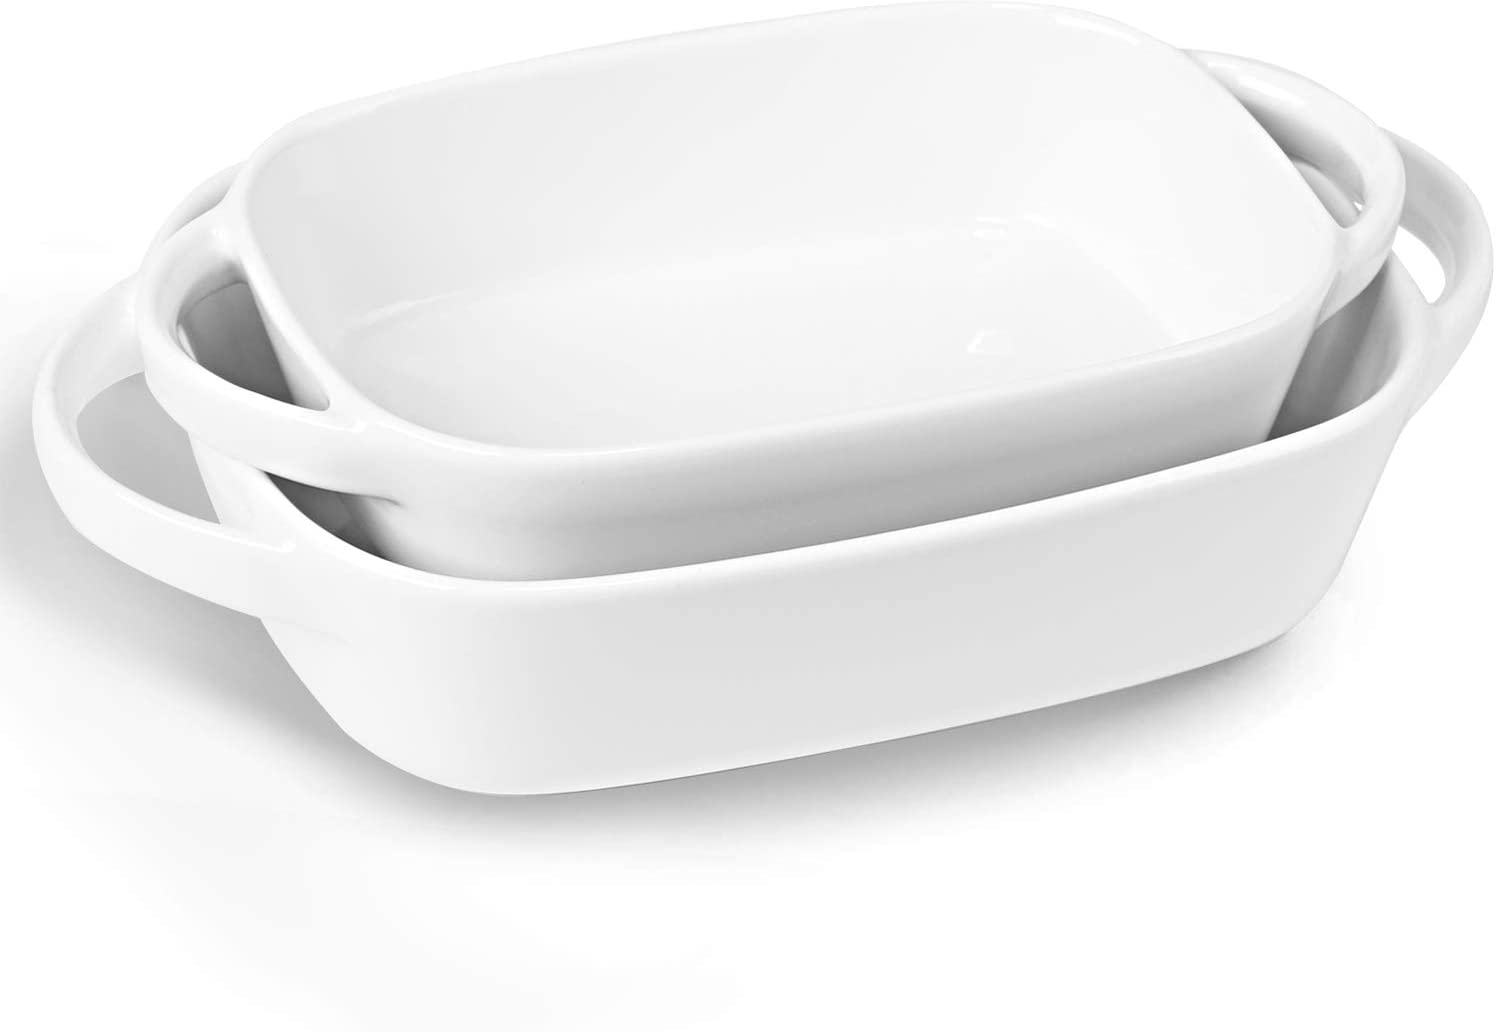 LEETOYI Porcelain Bakeware Set 2 Size, Rectangular Baking Dish with Double Handle,Ceramics Baking Pans for Kitchen, Cooking, Cake Dinner,1 or 2 person servings 8.7-Inch/7.5-Inch (Off White)